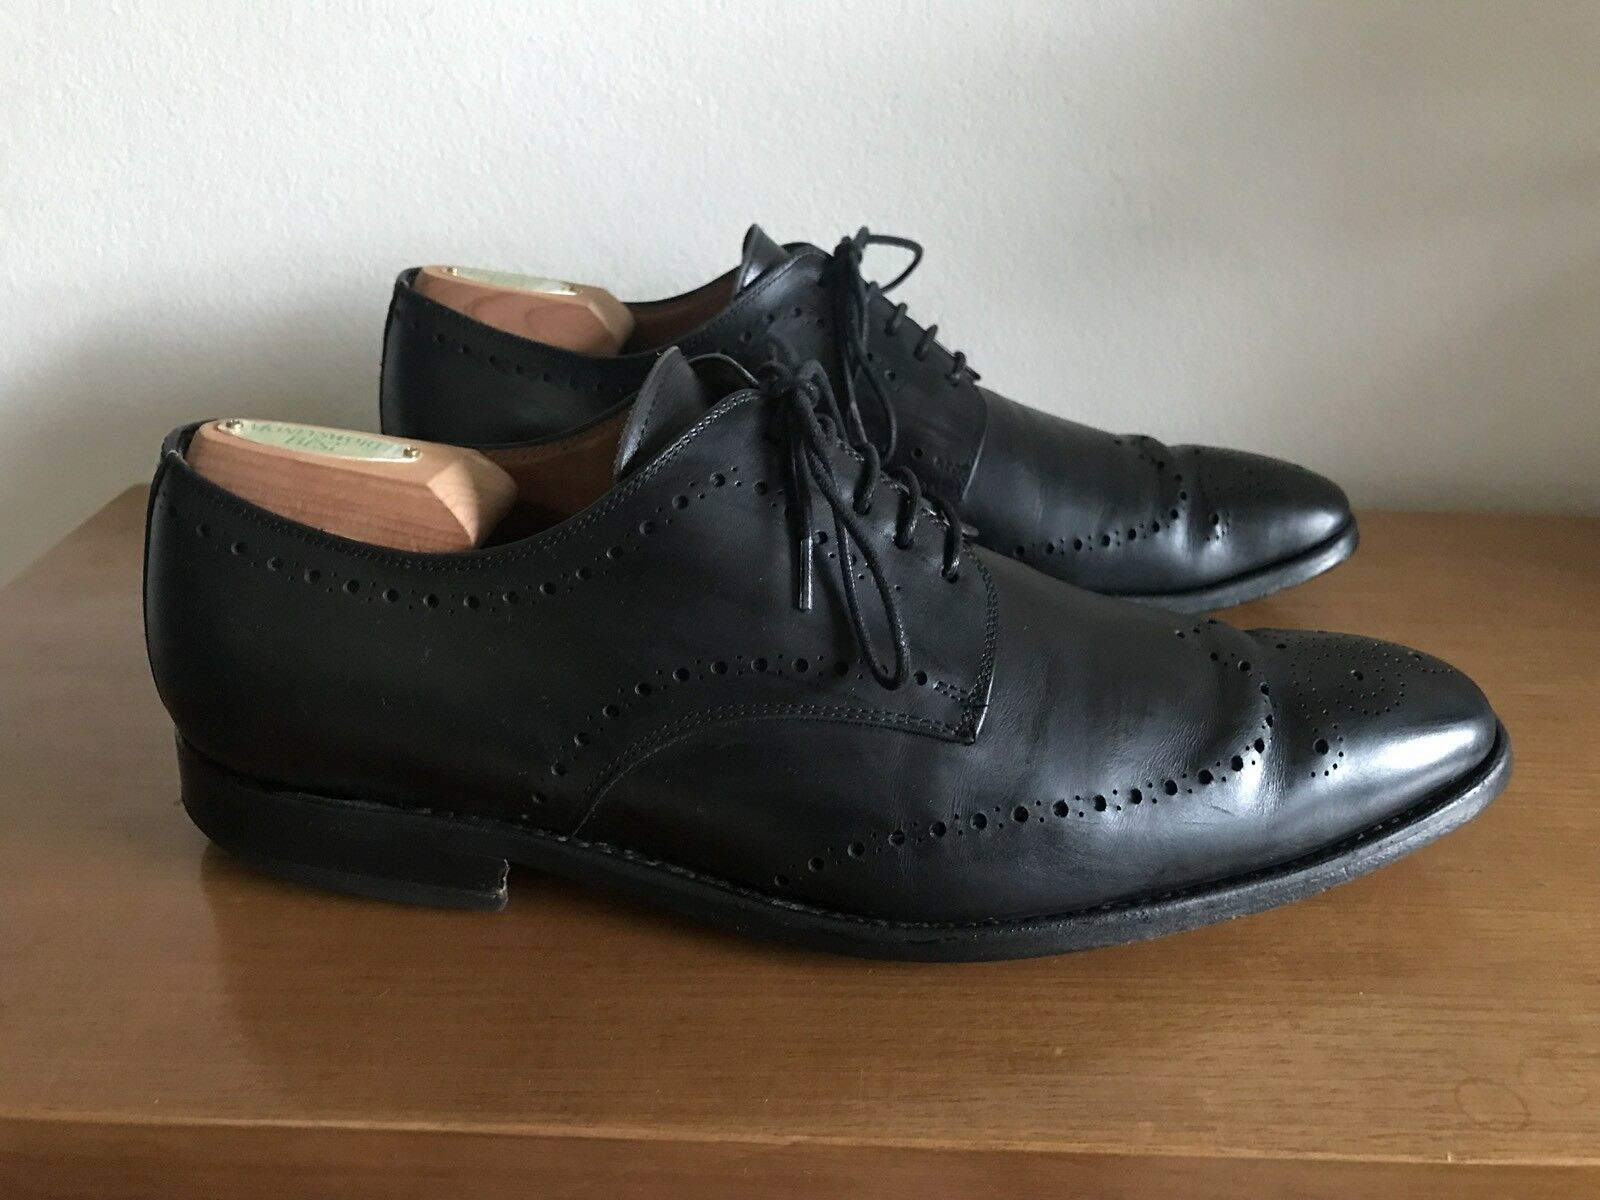 Howell Geneva - Swiss shoes For Men - Size 8-8.5 - Leather Brogues